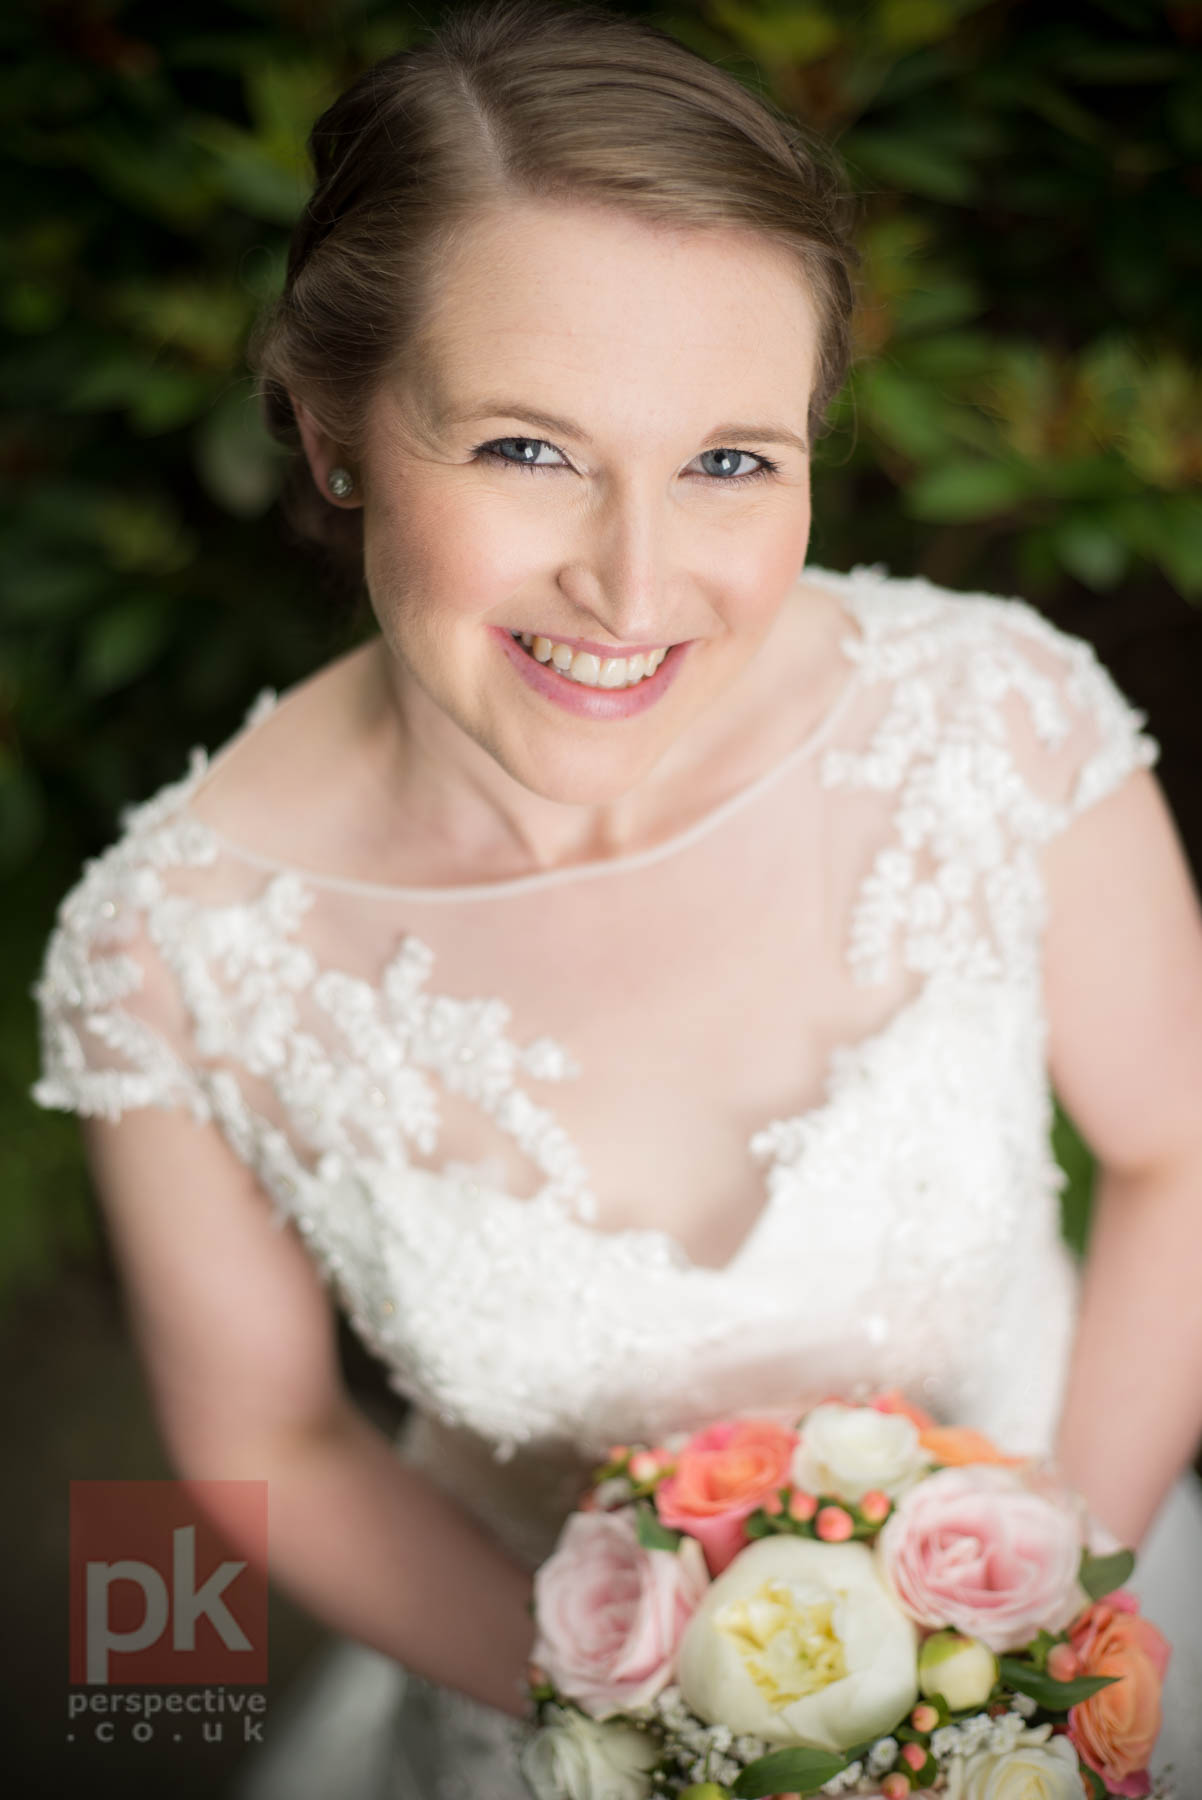 Another very happy bride and an absolute pleasure to work with. Aberdeen was out of my usual area but the shots worked out well.